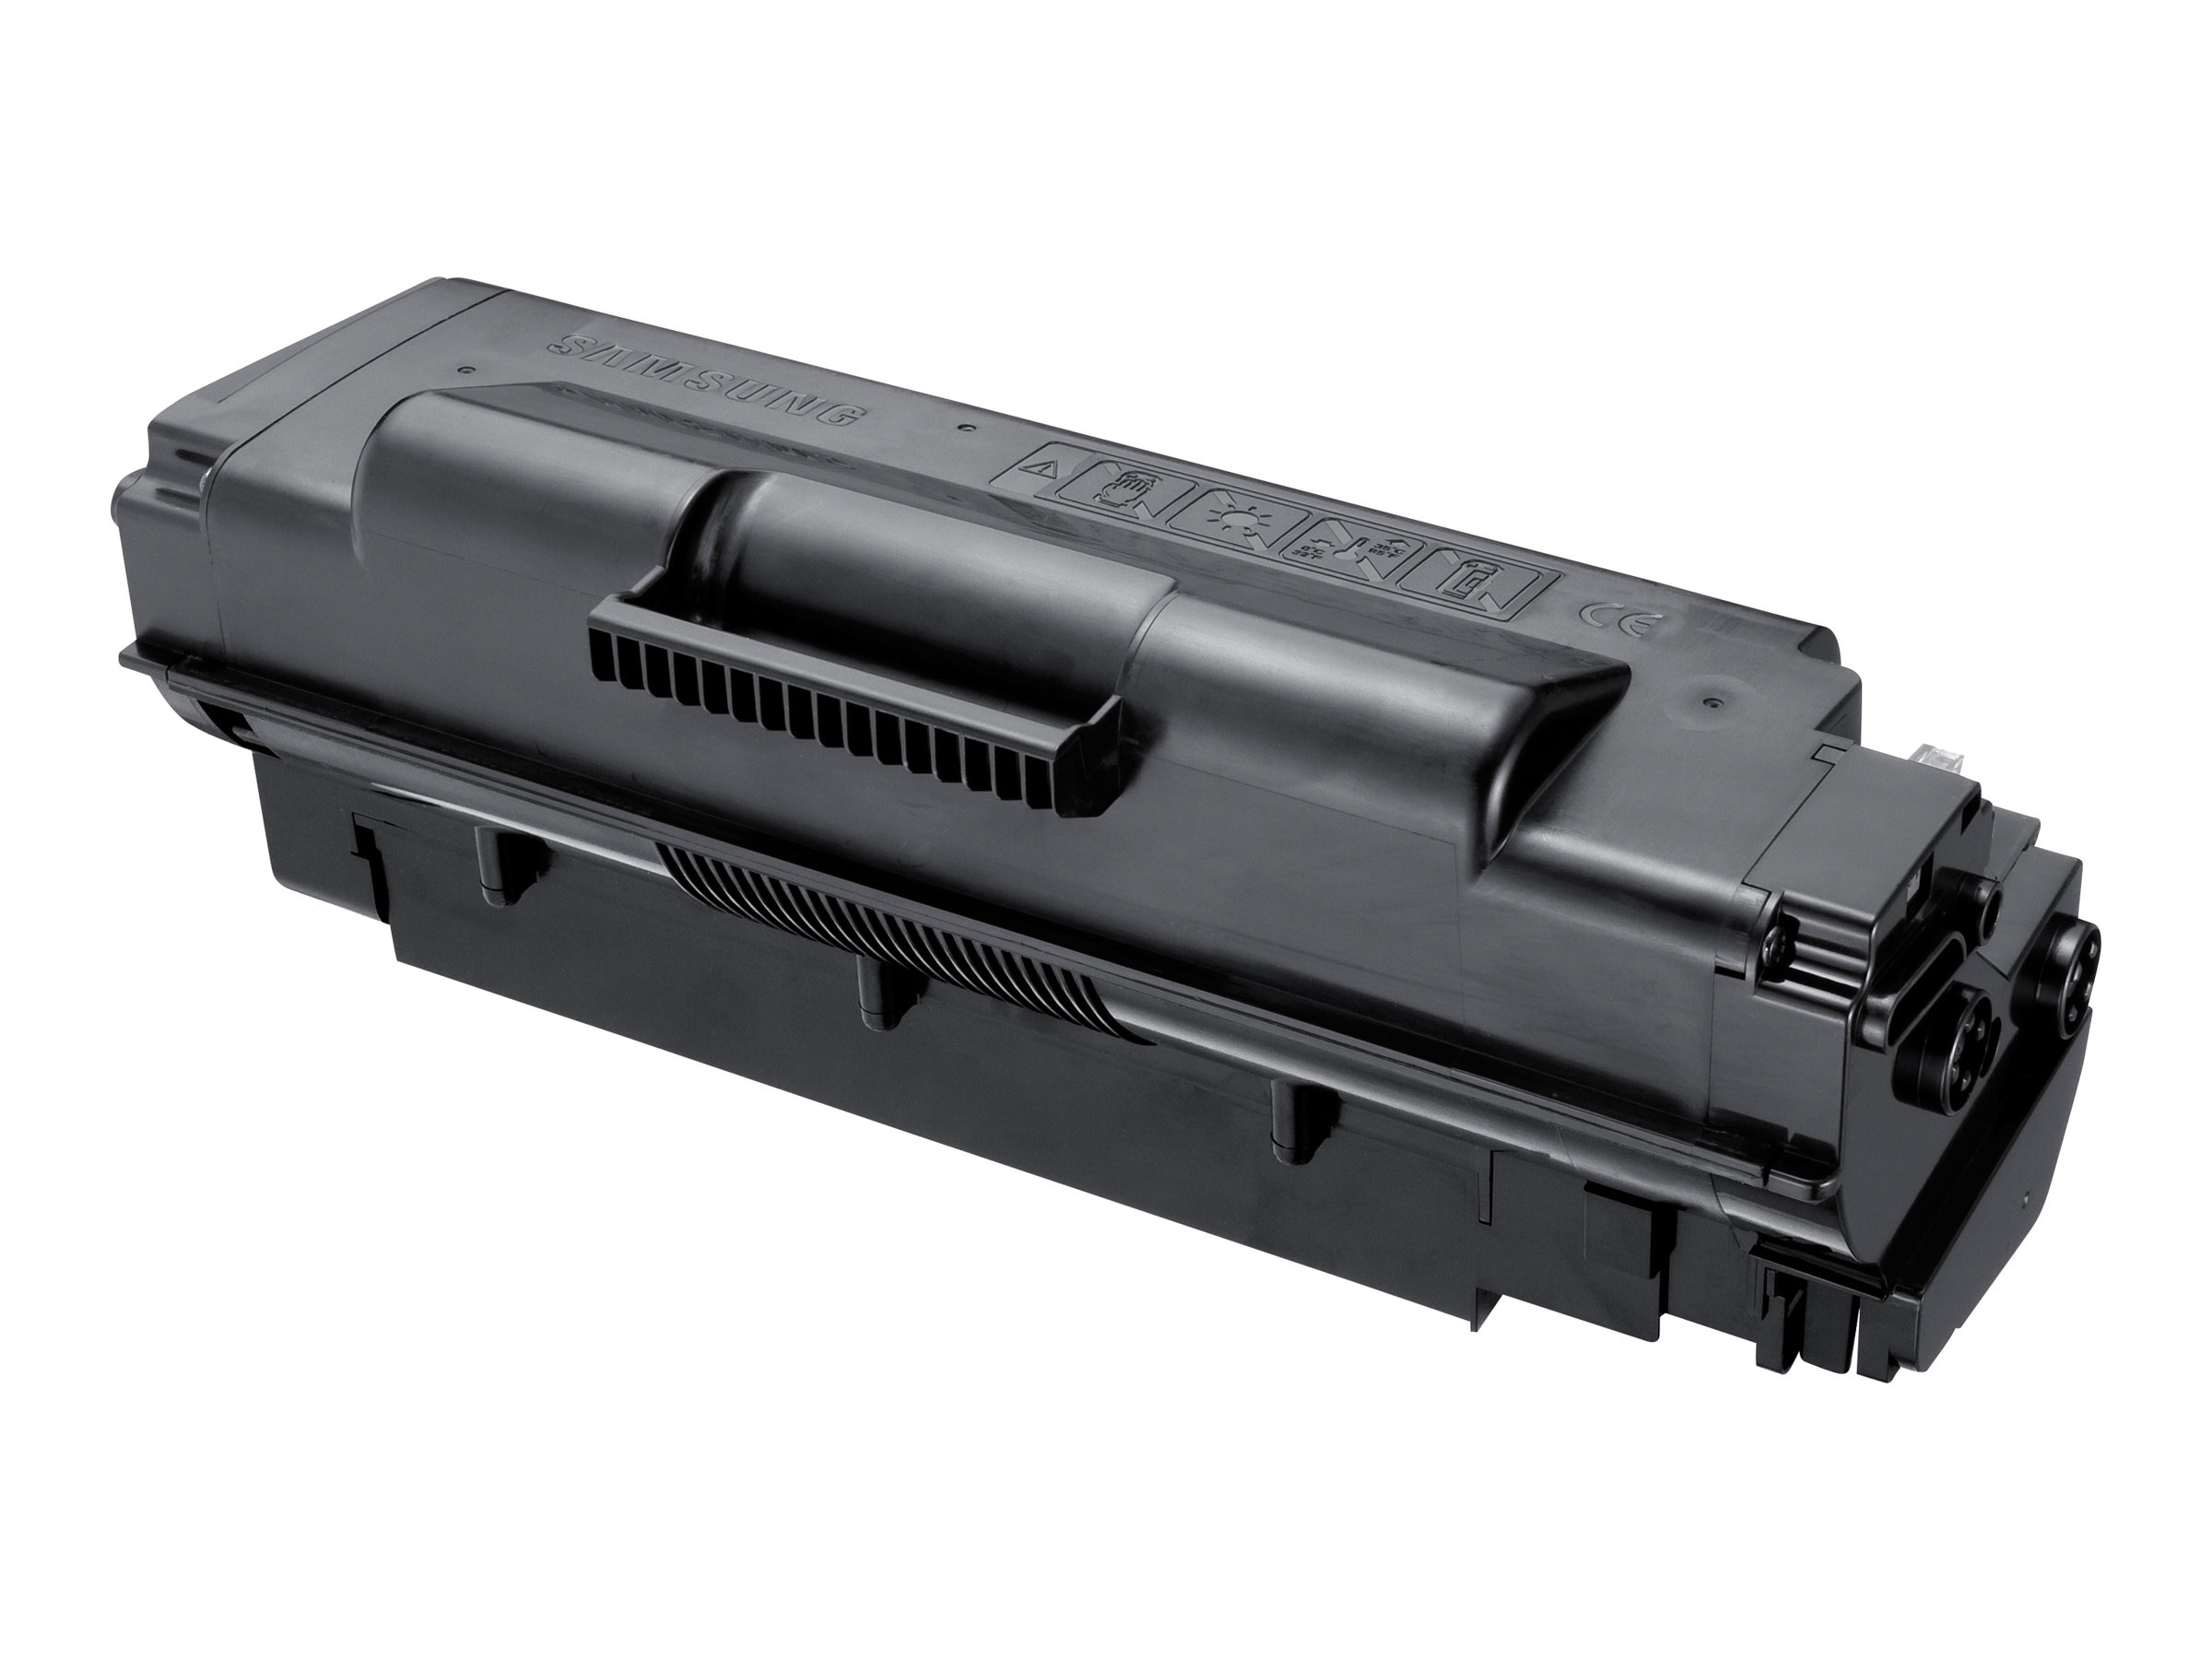 Samsung Black Extra High Yield Toner Cartridge for ML-4512ND, ML-5012ND & ML-5017ND, MLT-D307E